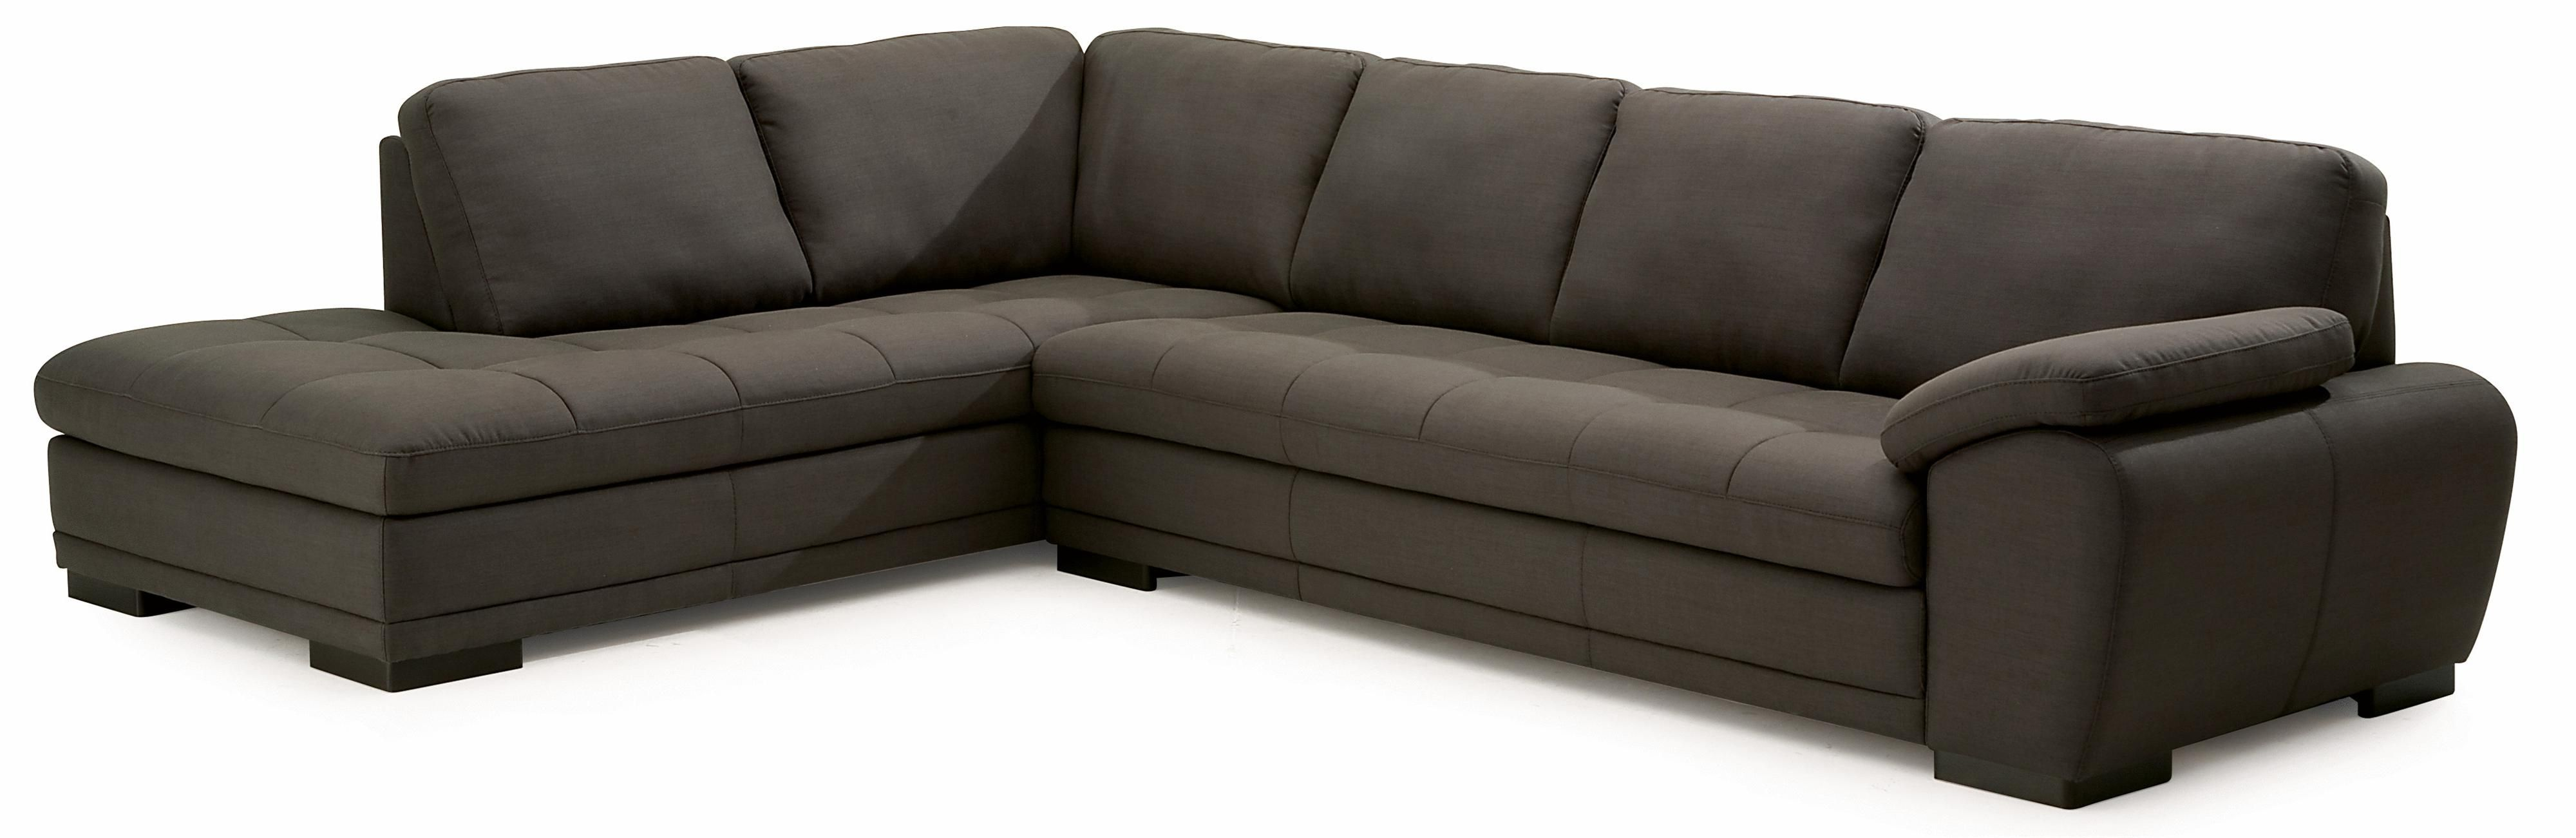 Miami Contemporary 2-Piece Sectional Sofa with Left-Facing Chaise by ...